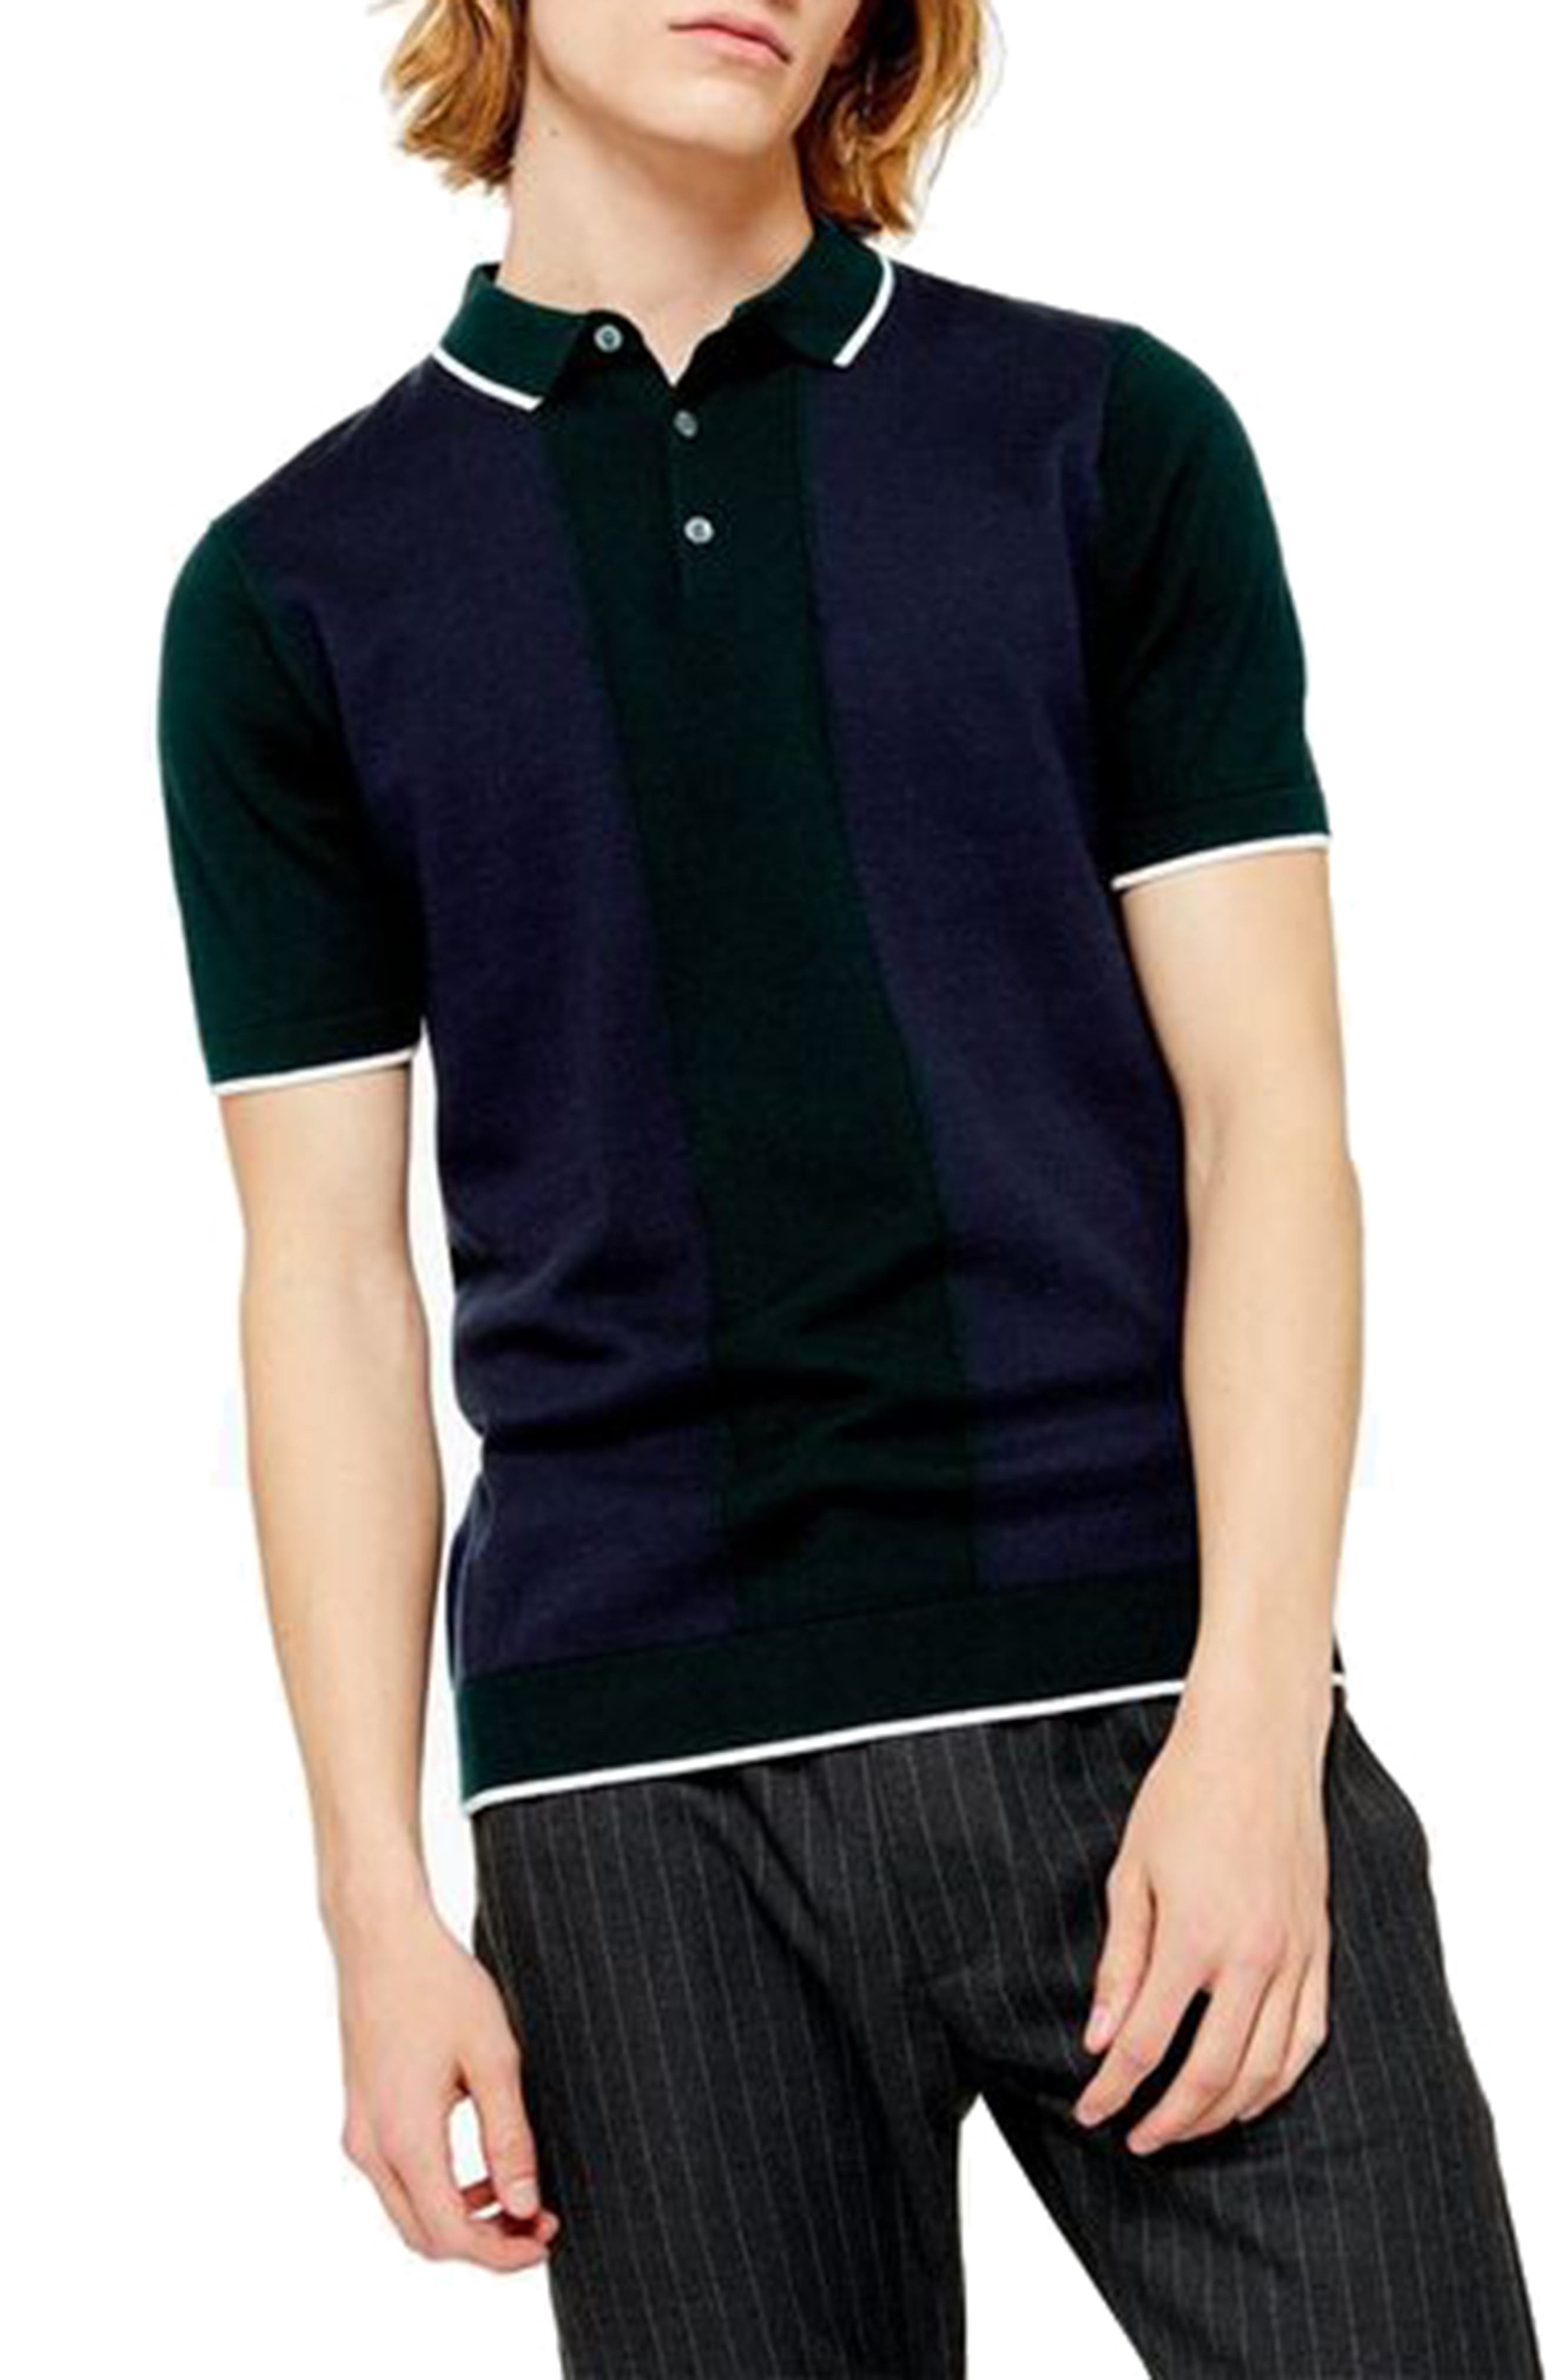 Vintage Shirts – Mens – Retro Shirts Mens Topman Colorblock Sweater Polo $45.00 AT vintagedancer.com